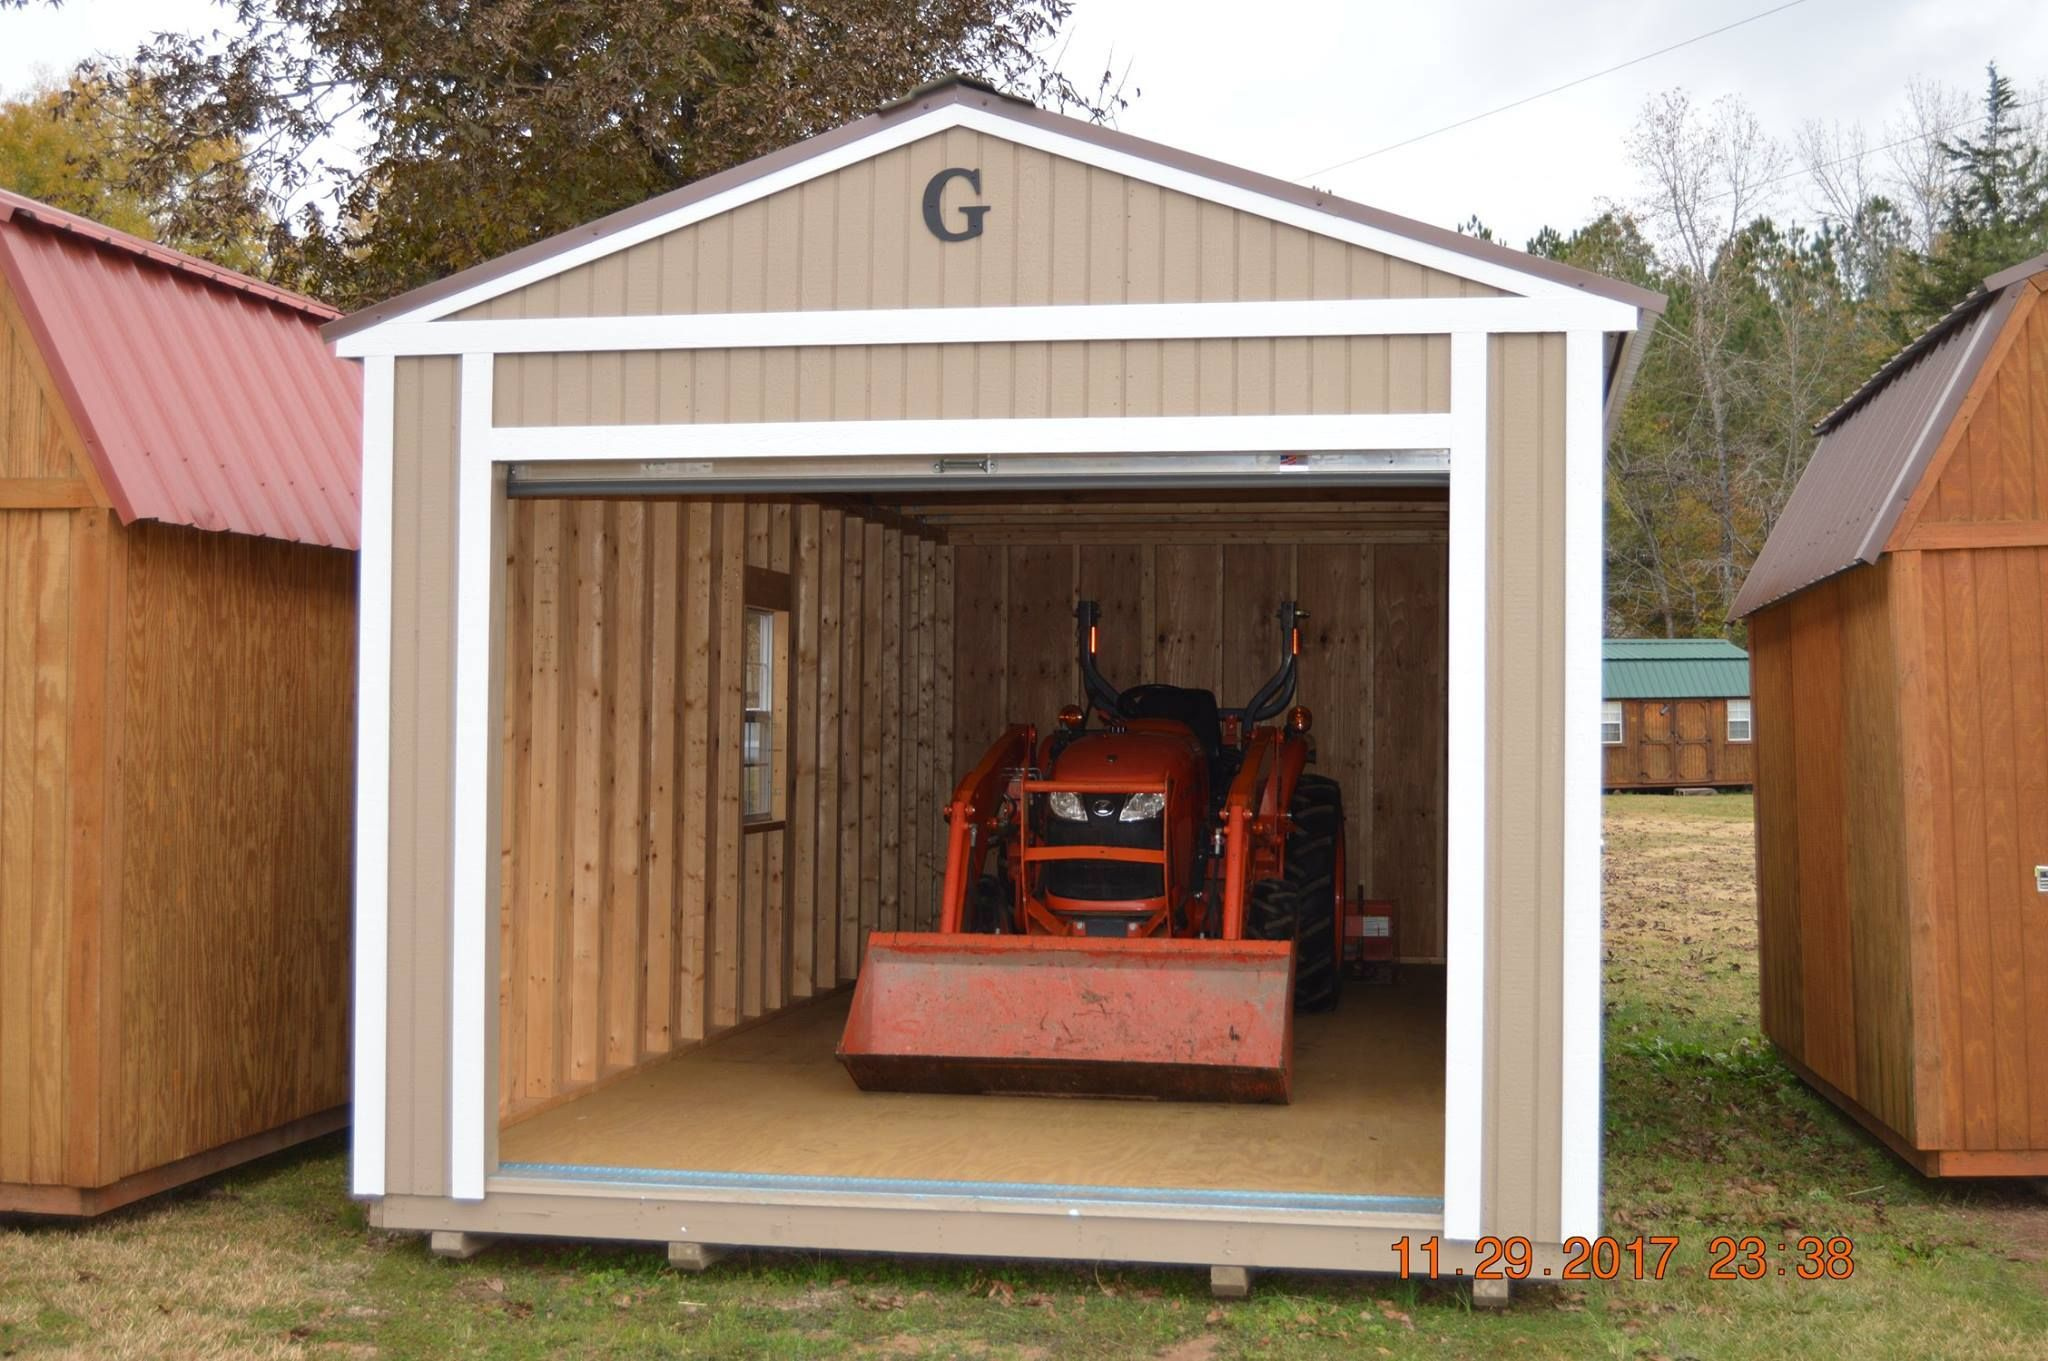 14x24 Garage Graceland Finally A Garage That Can Hold More Than A Golf Cart Or Lawn Mower Reinforced Flo Portable Buildings Portable Barn Utility Buildings